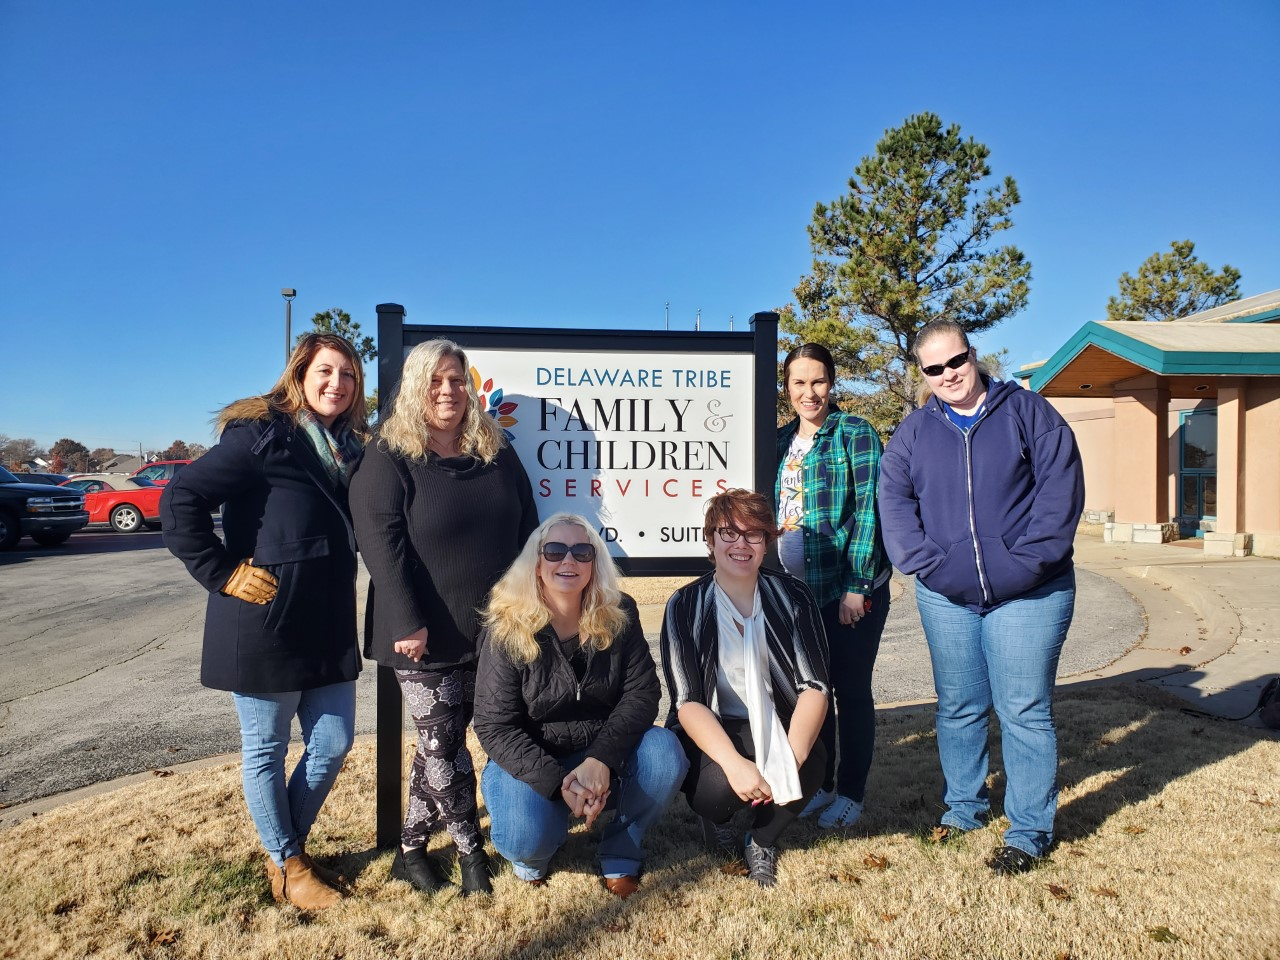 photo of Elizabeth and others at the Delaware Tribe headquarters